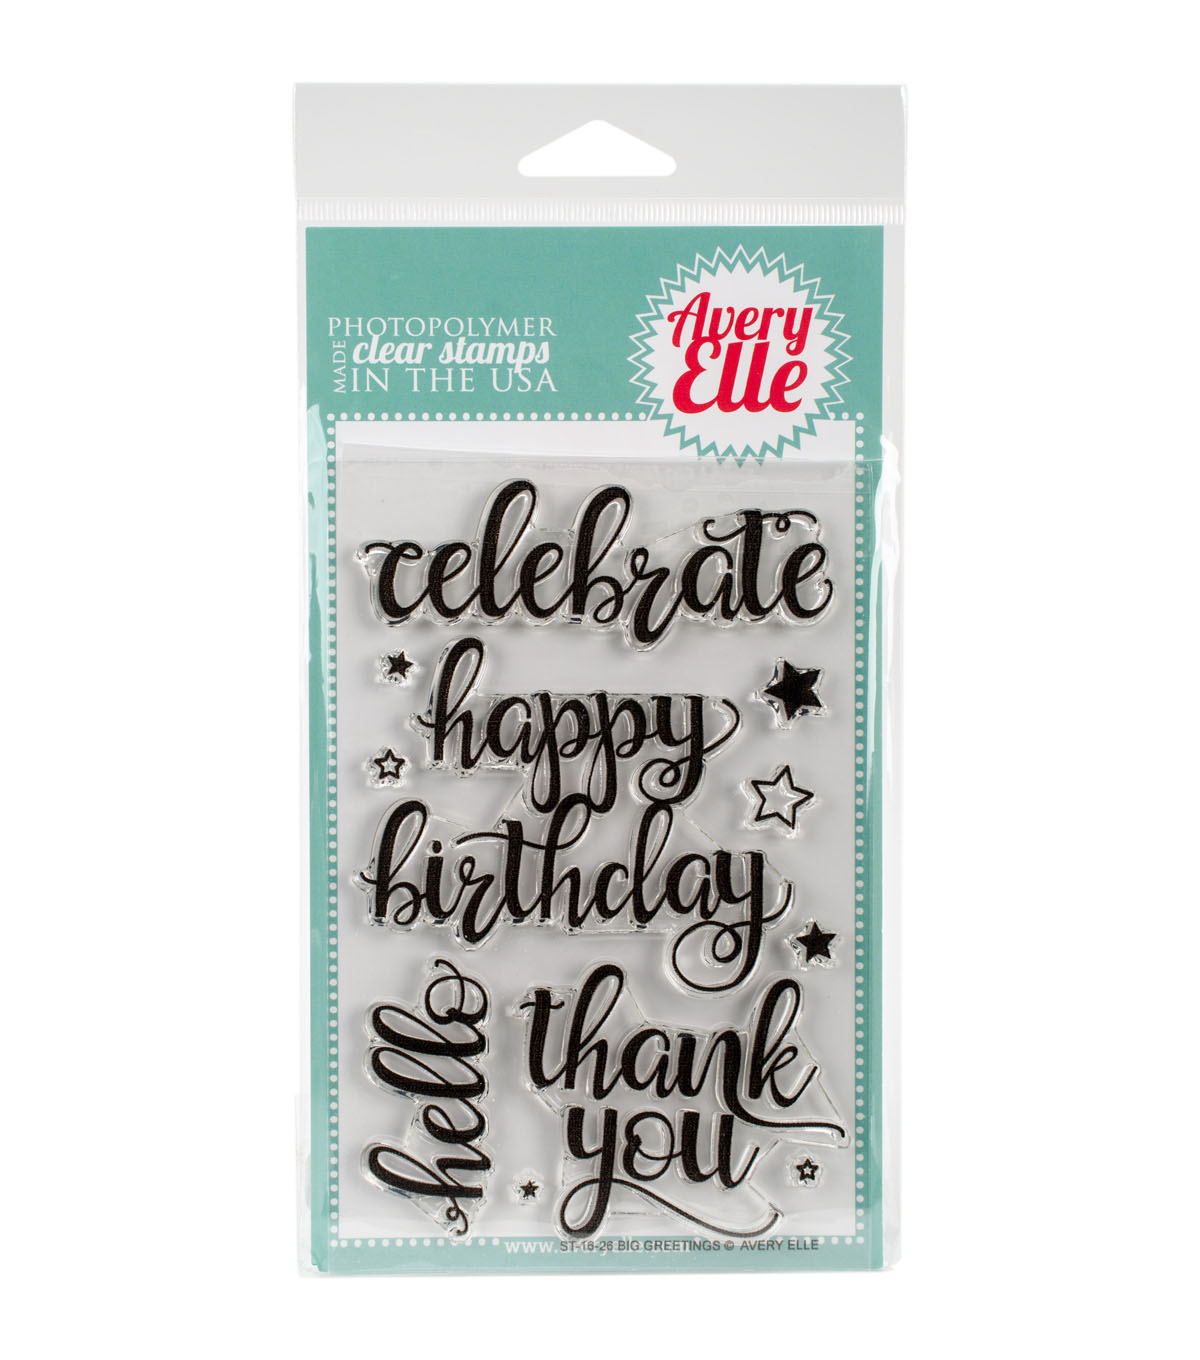 Avery Elle 12 pk Clear Stamps-Big Greetings